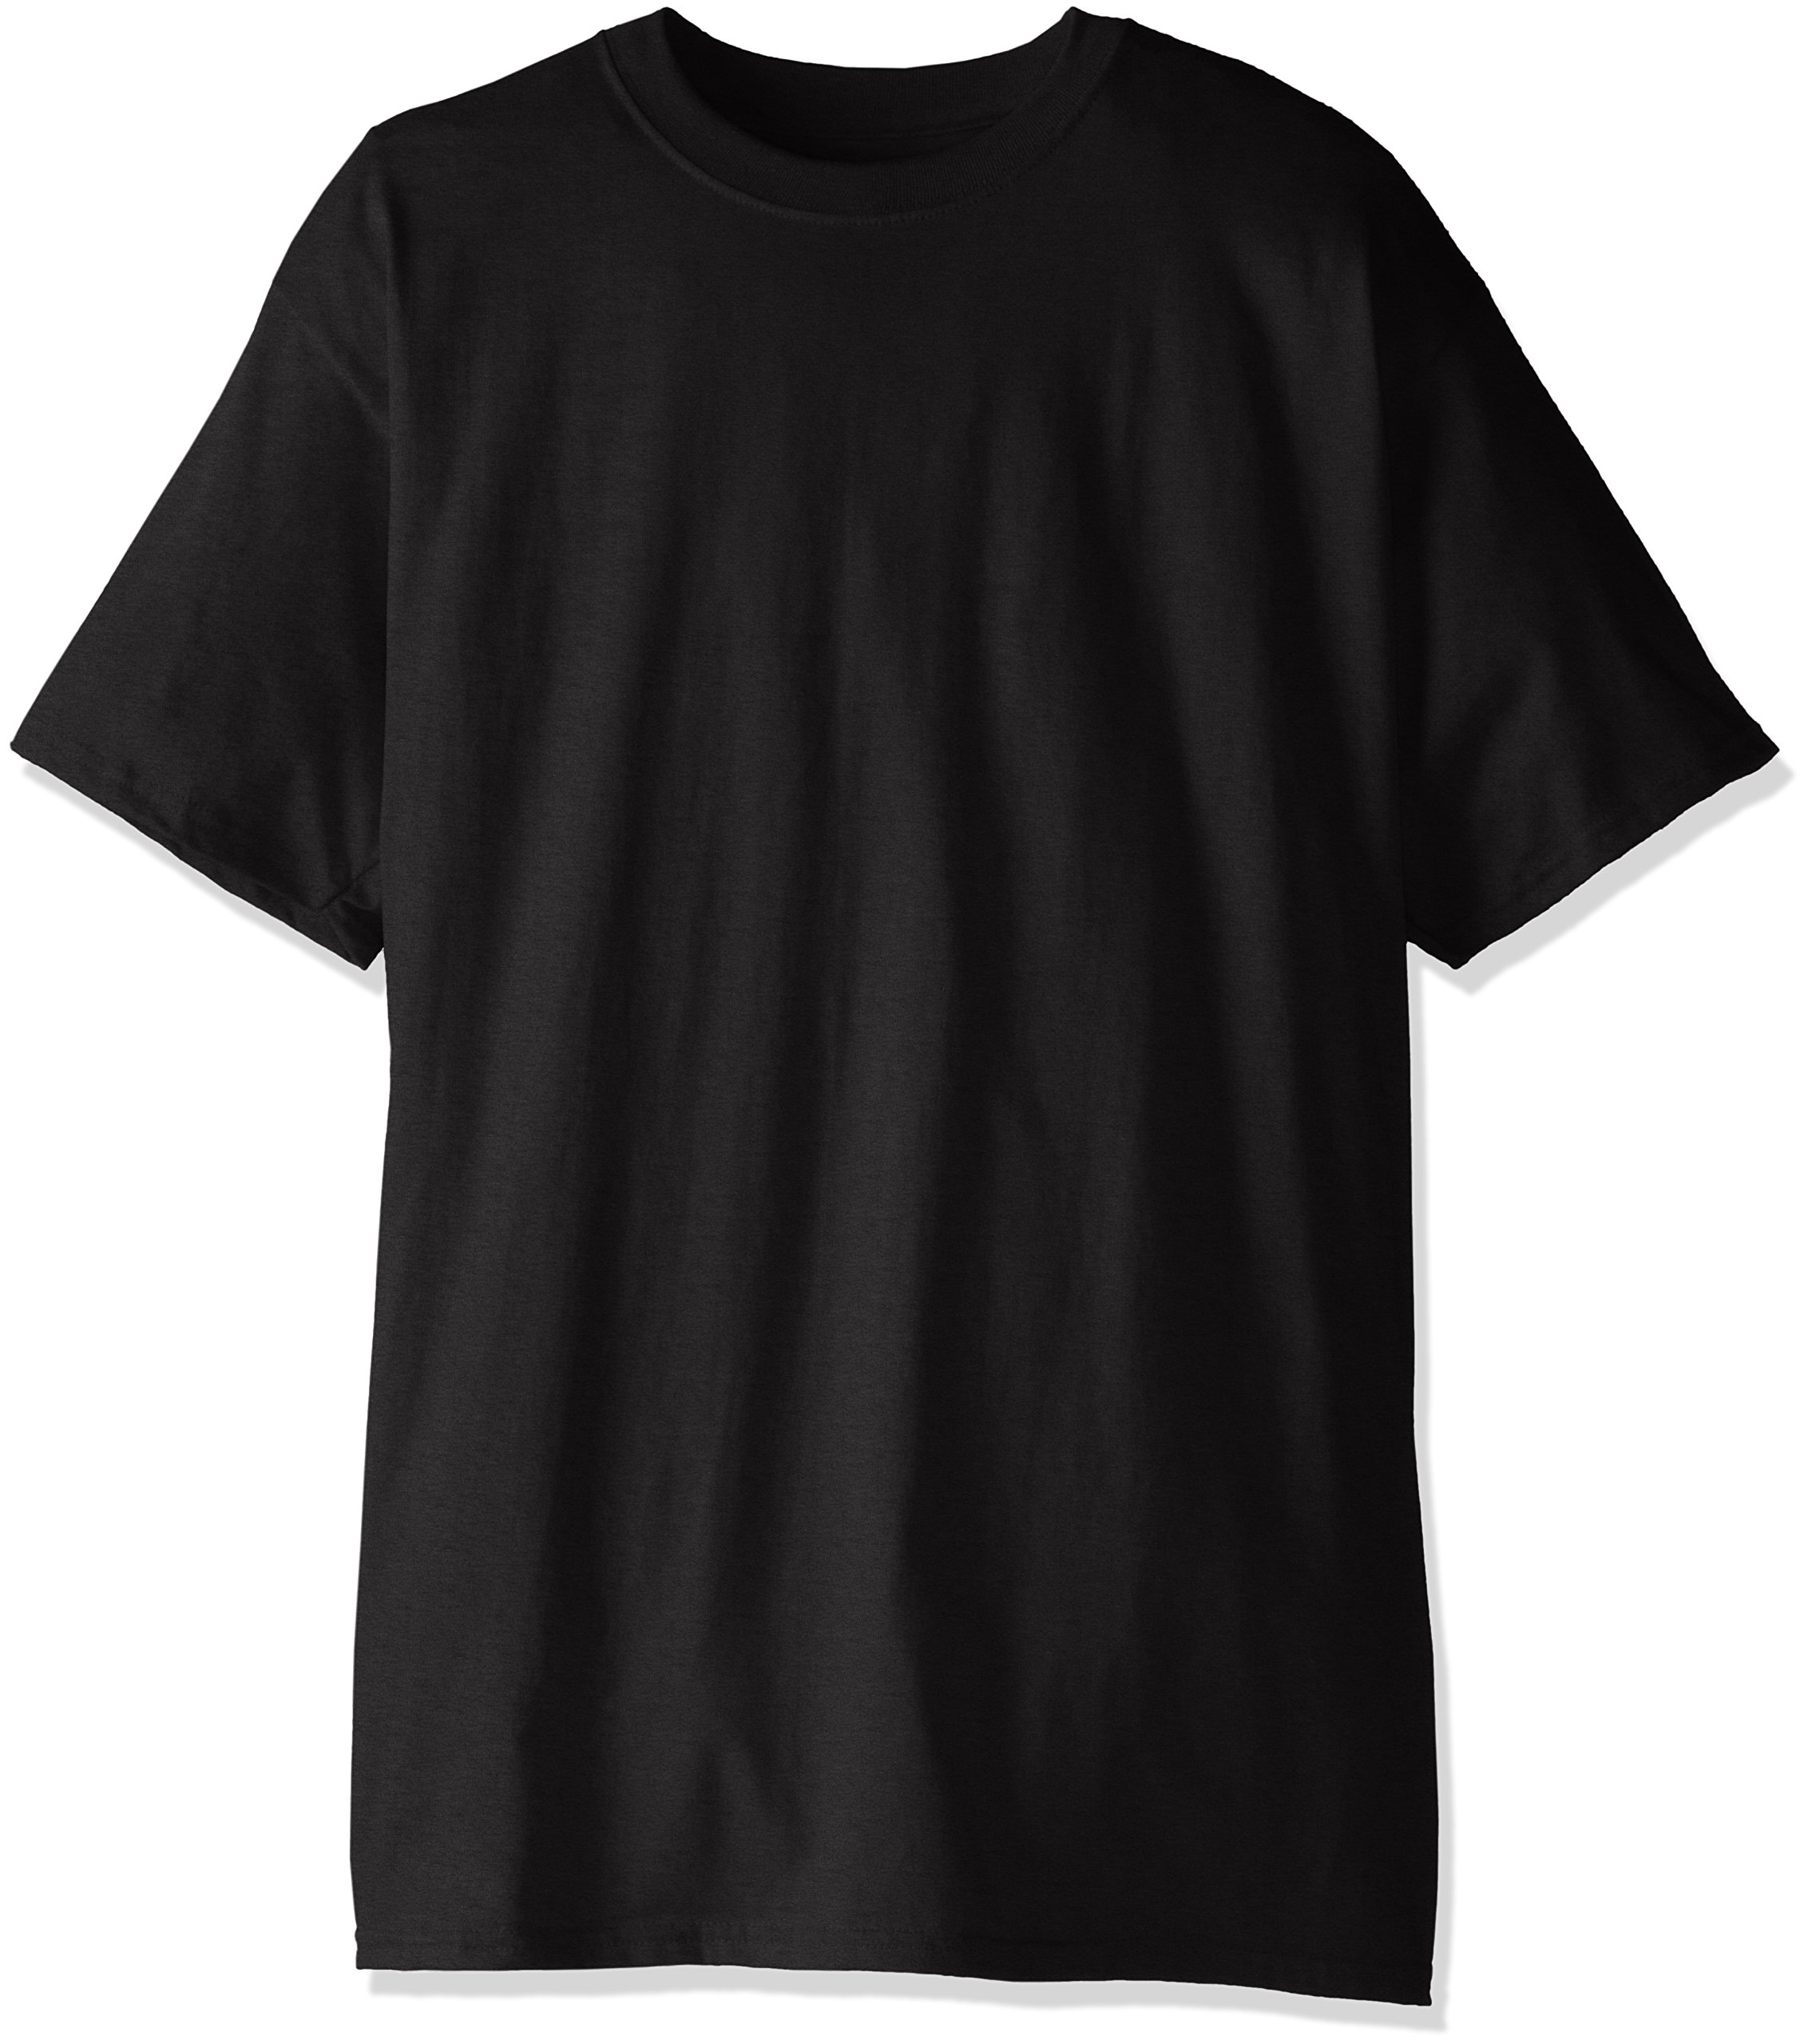 Hanes Men's Tall Short Sleeve Beefy-T, Black, 3X-Large/Tall (Pack of 2) by Hanes (Image #1)